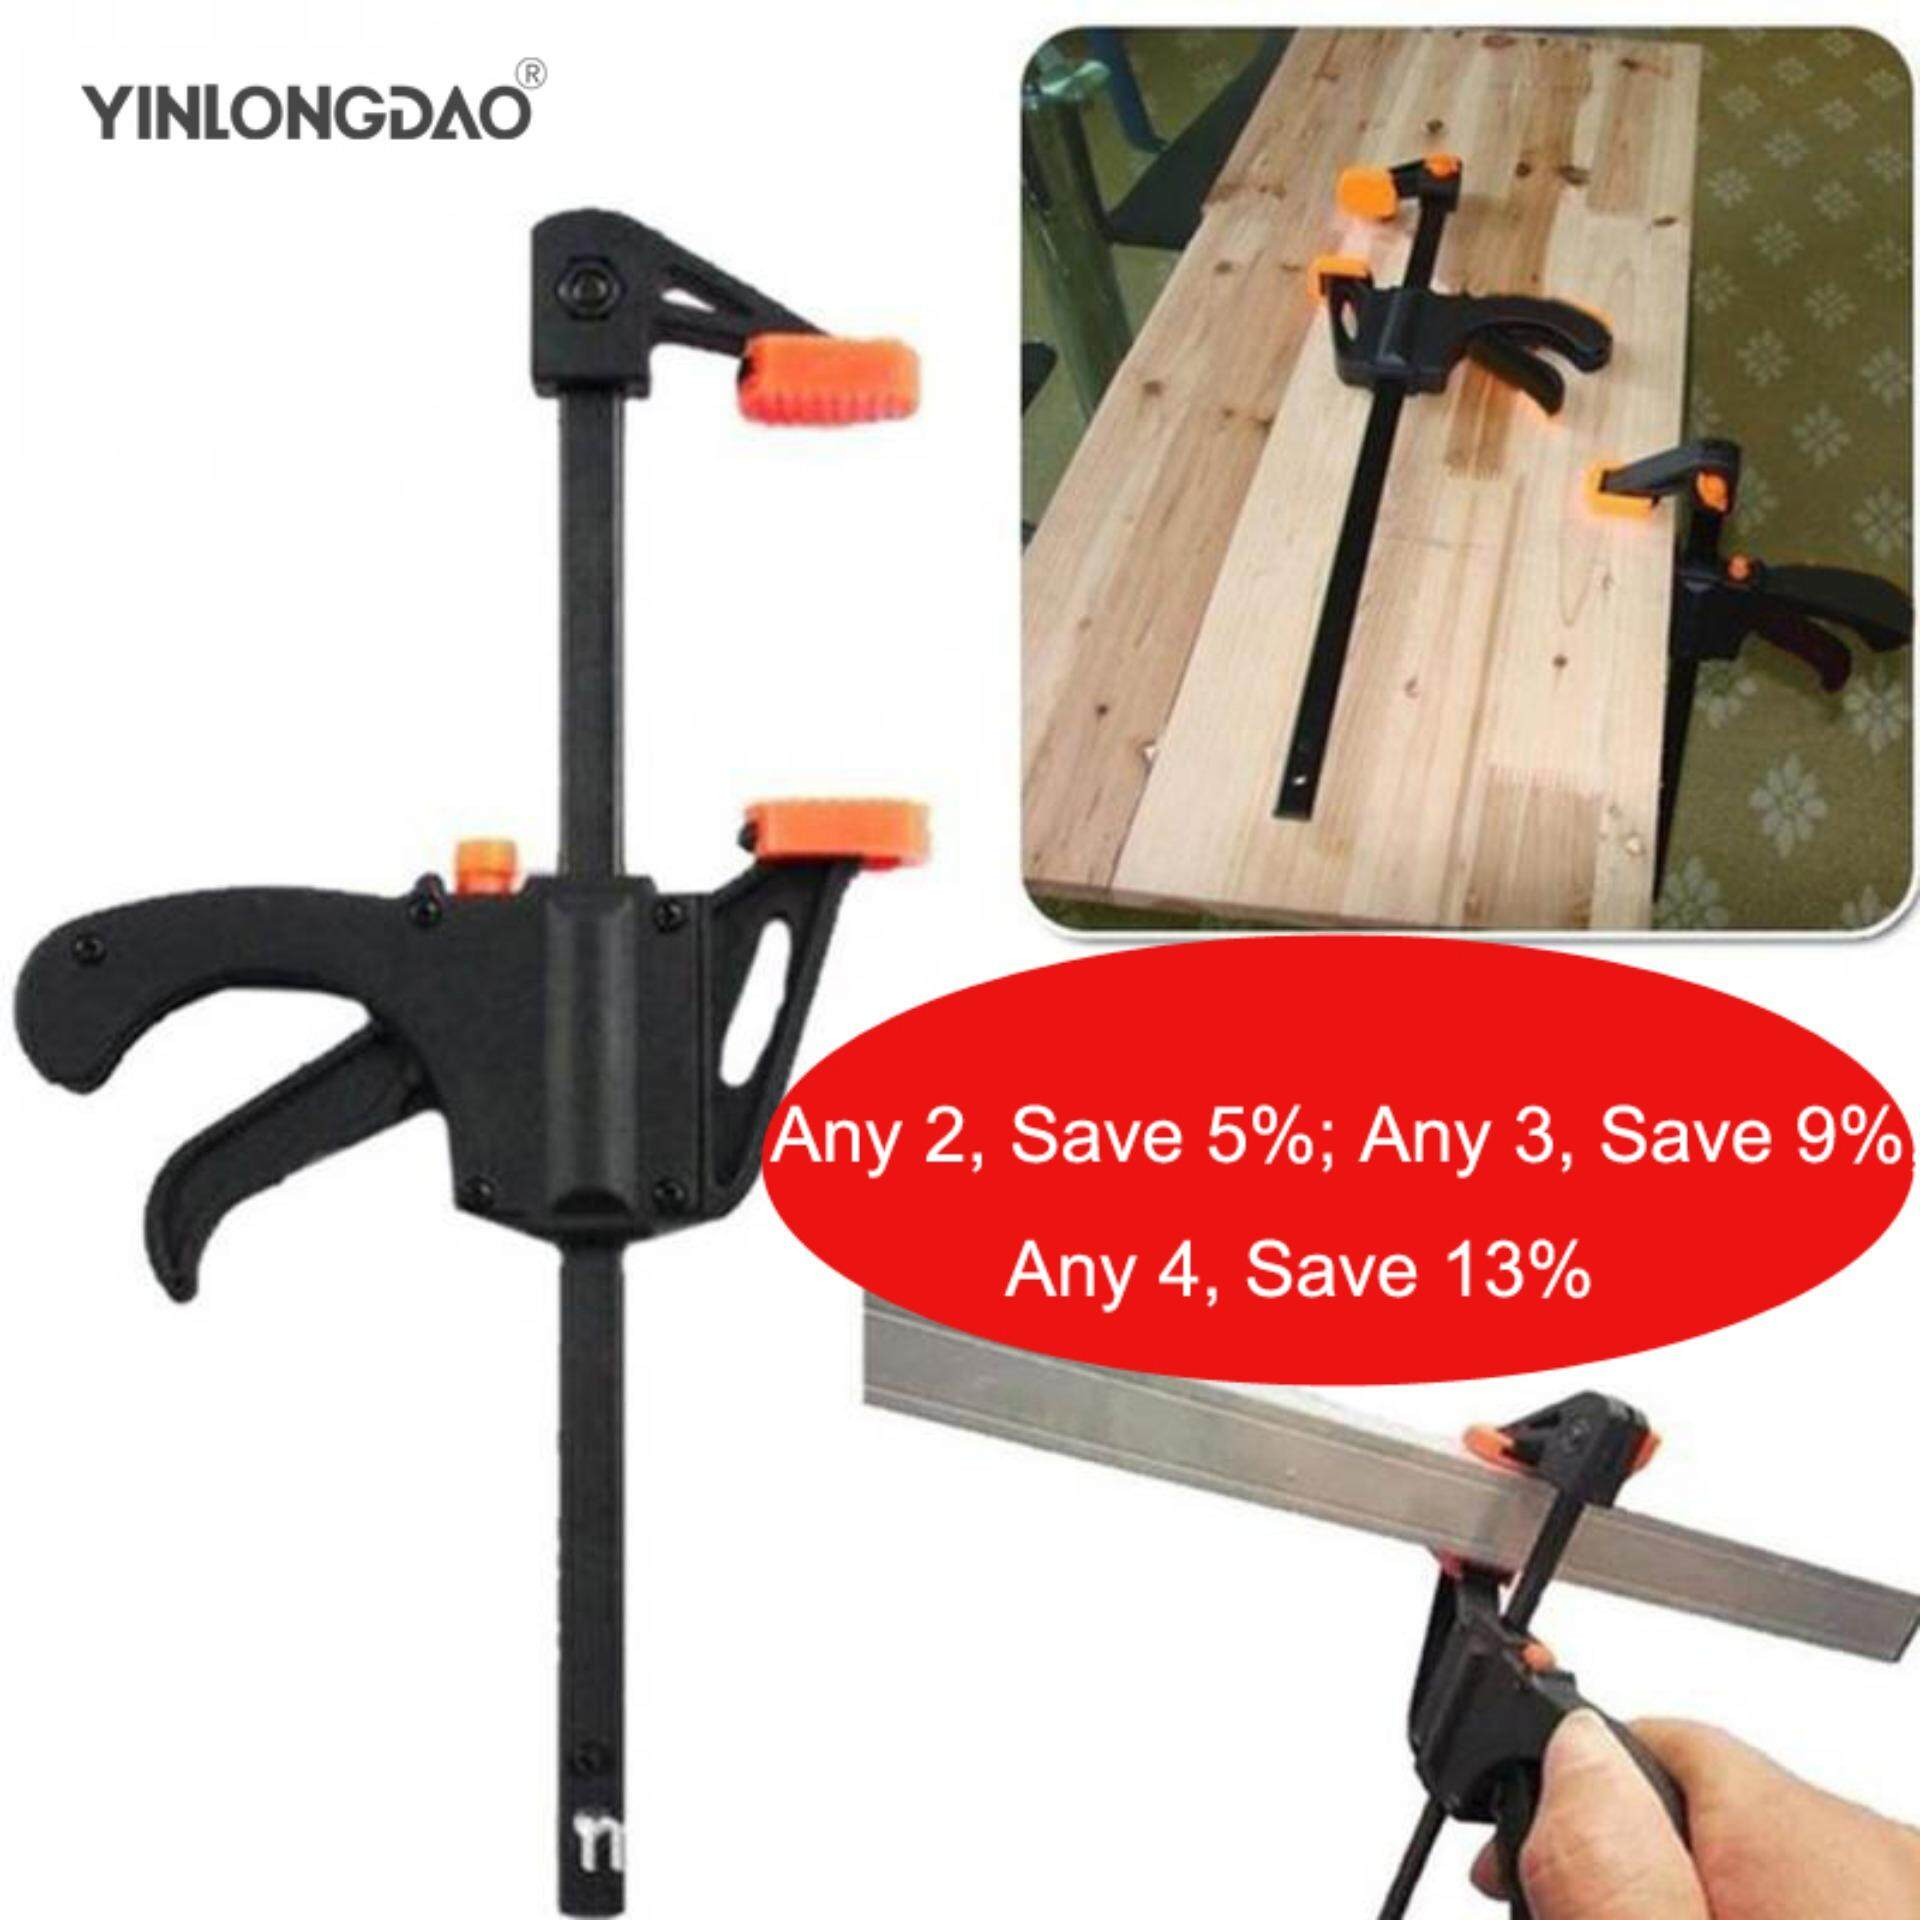 4 Inch Woodworking Clamp Quick Release Wood Working Bar F Clamp Clamping Device